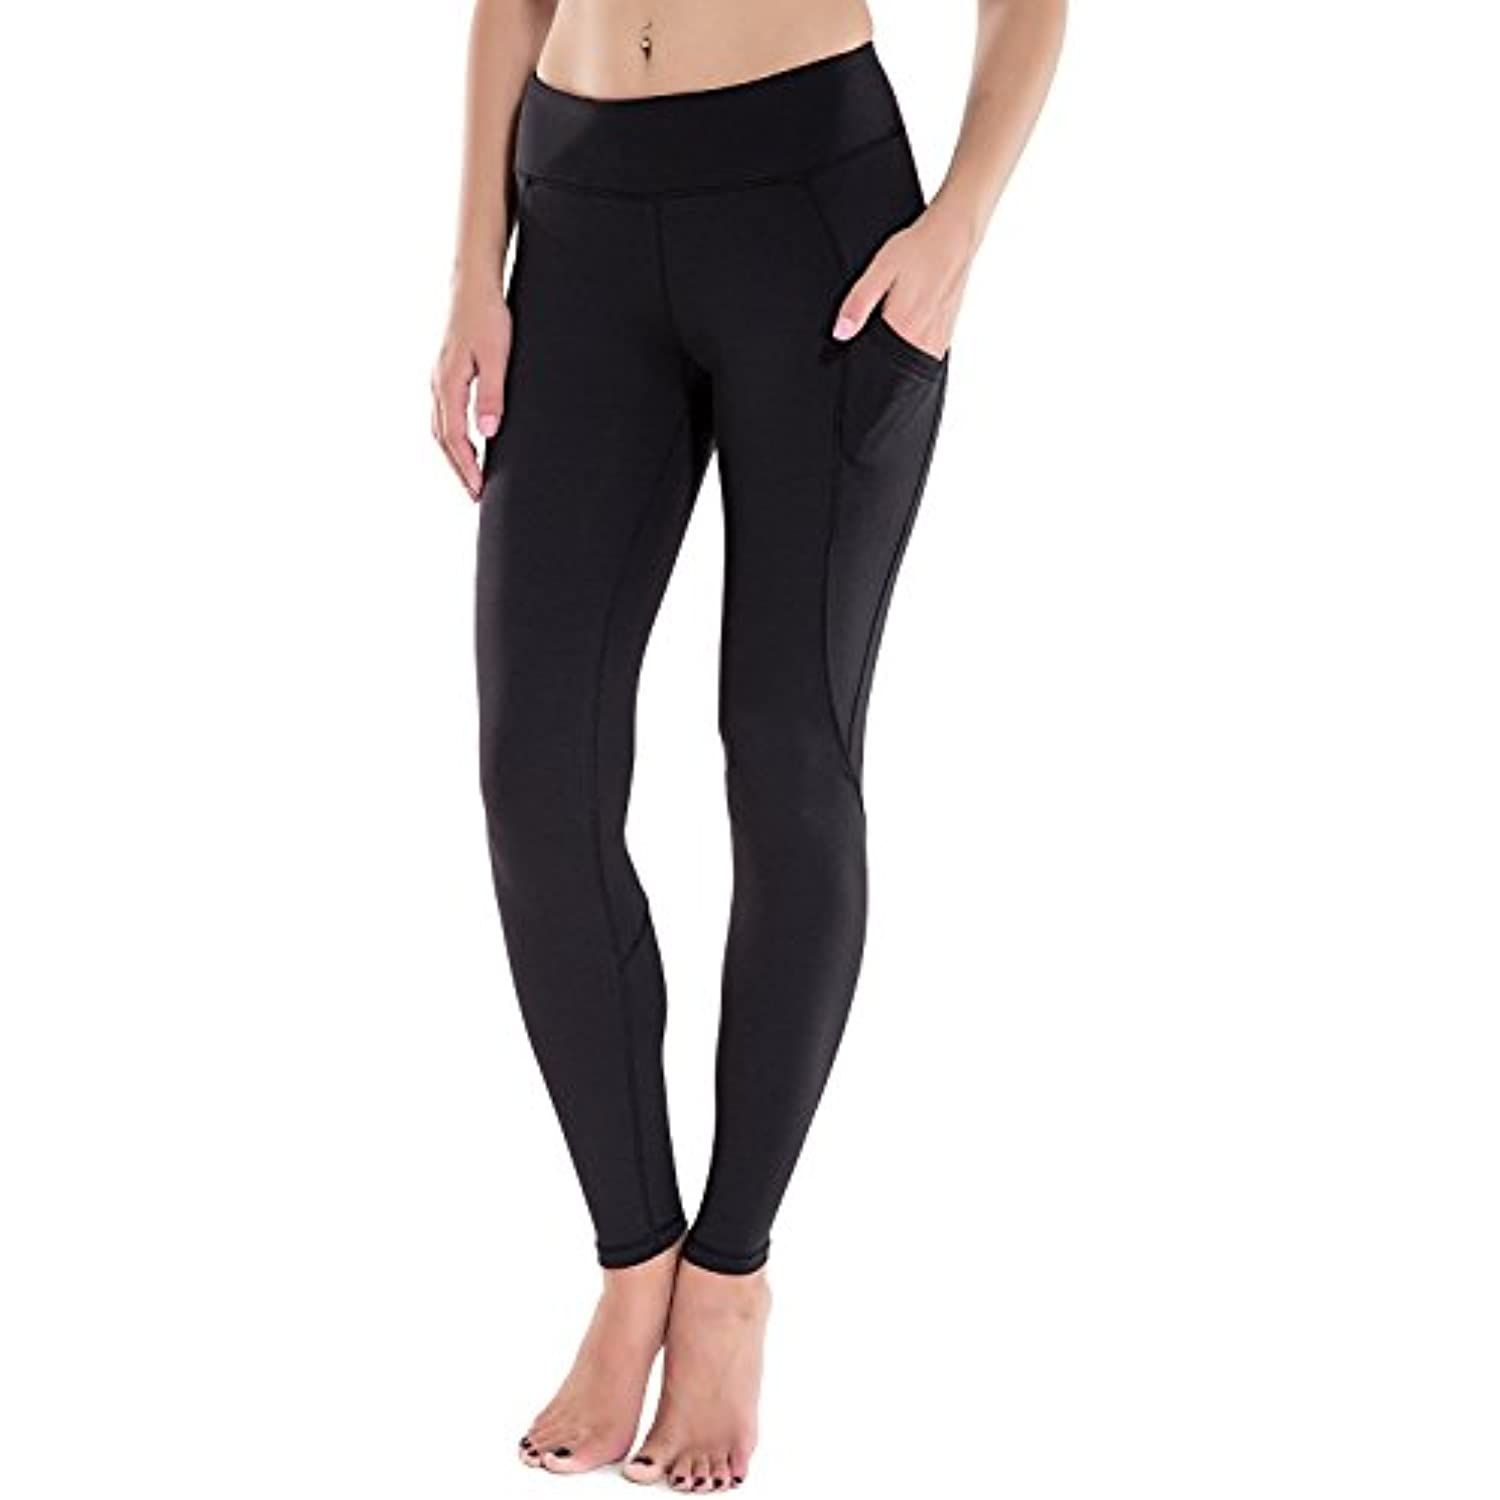 Houmous Womens Workout Ankle Leggings Tummy Control Full-Length Yoga Pants